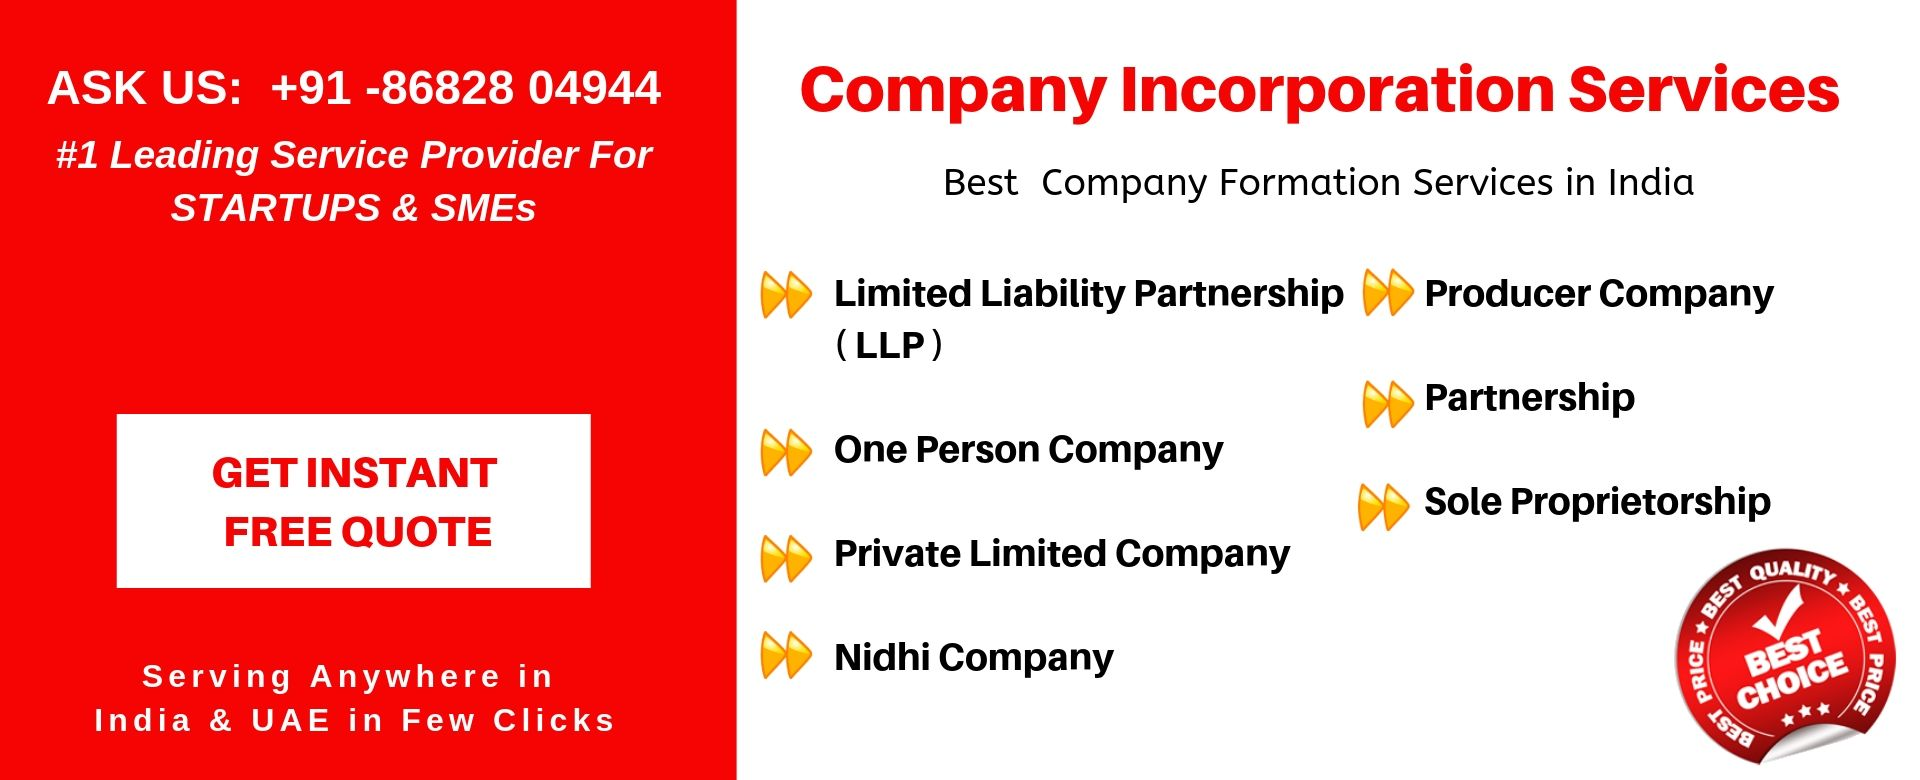 company incorporation services india